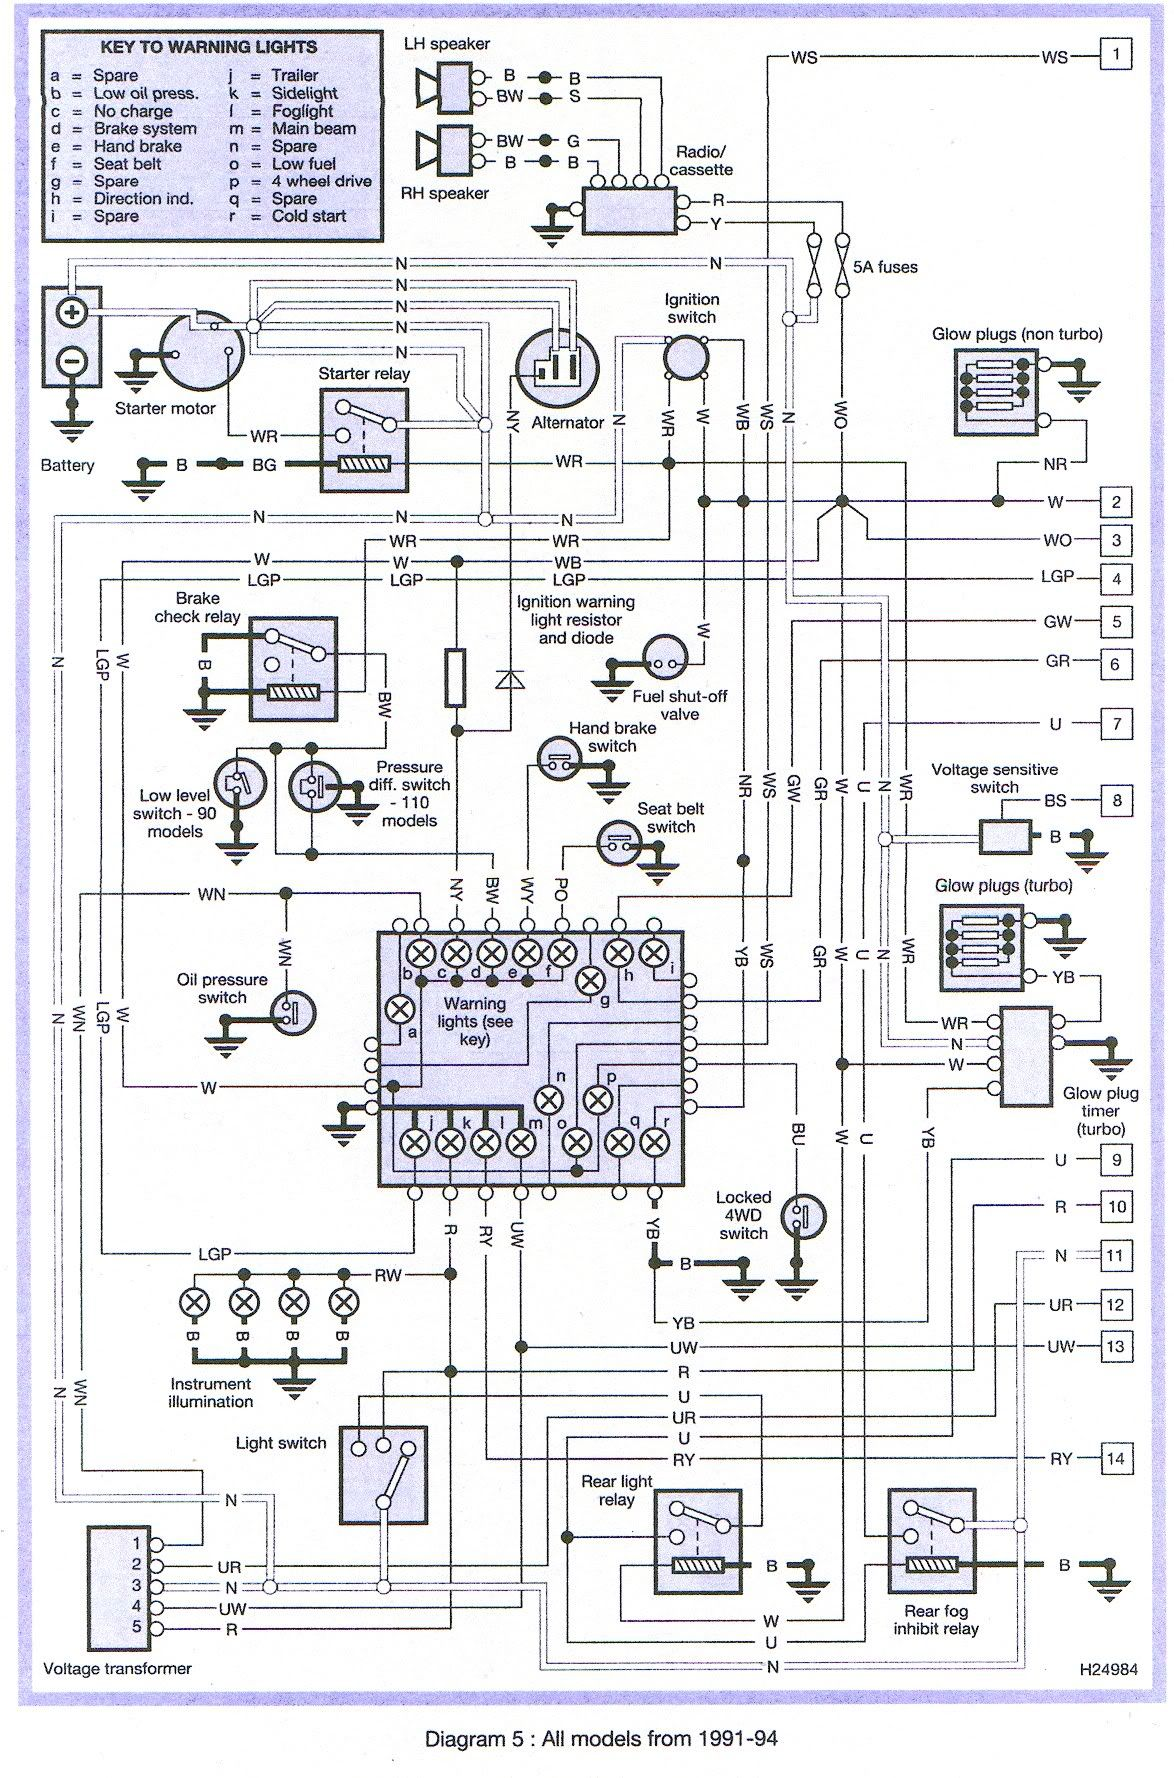 Land Rover Discovery 3 Radio Wiring Diagram 2002 Gsxr 600 Manual Repair With